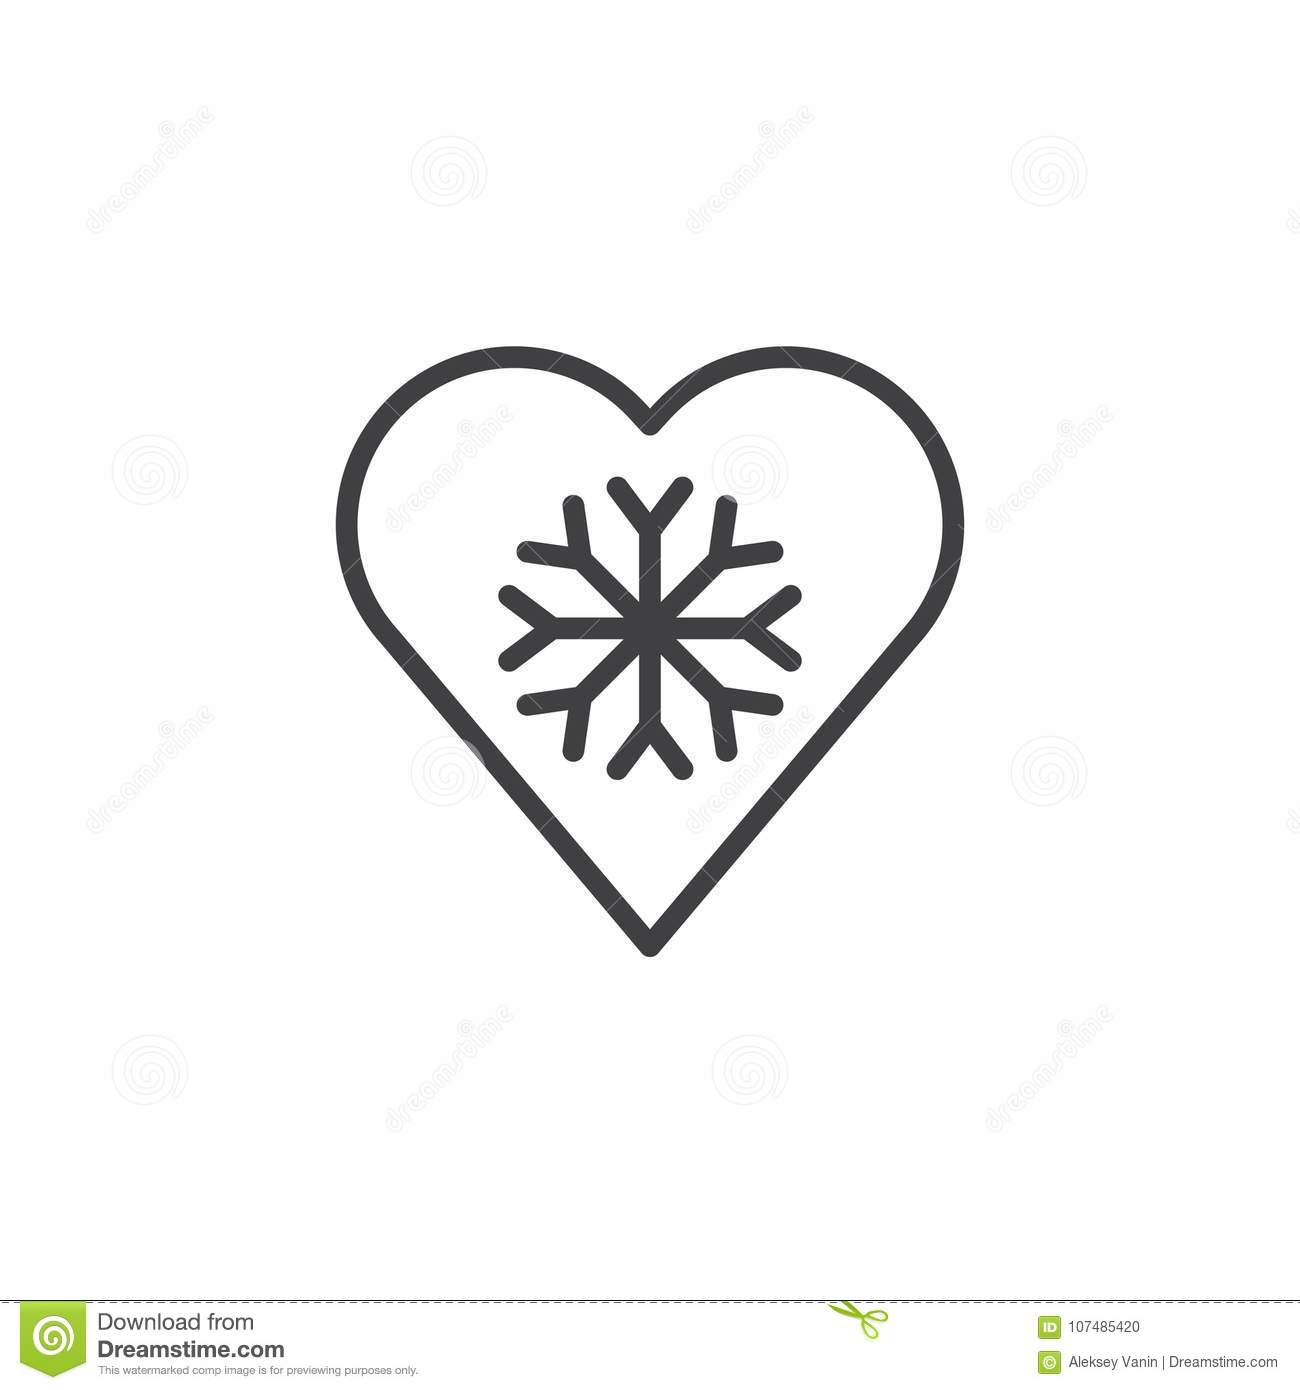 Cold heart line icon